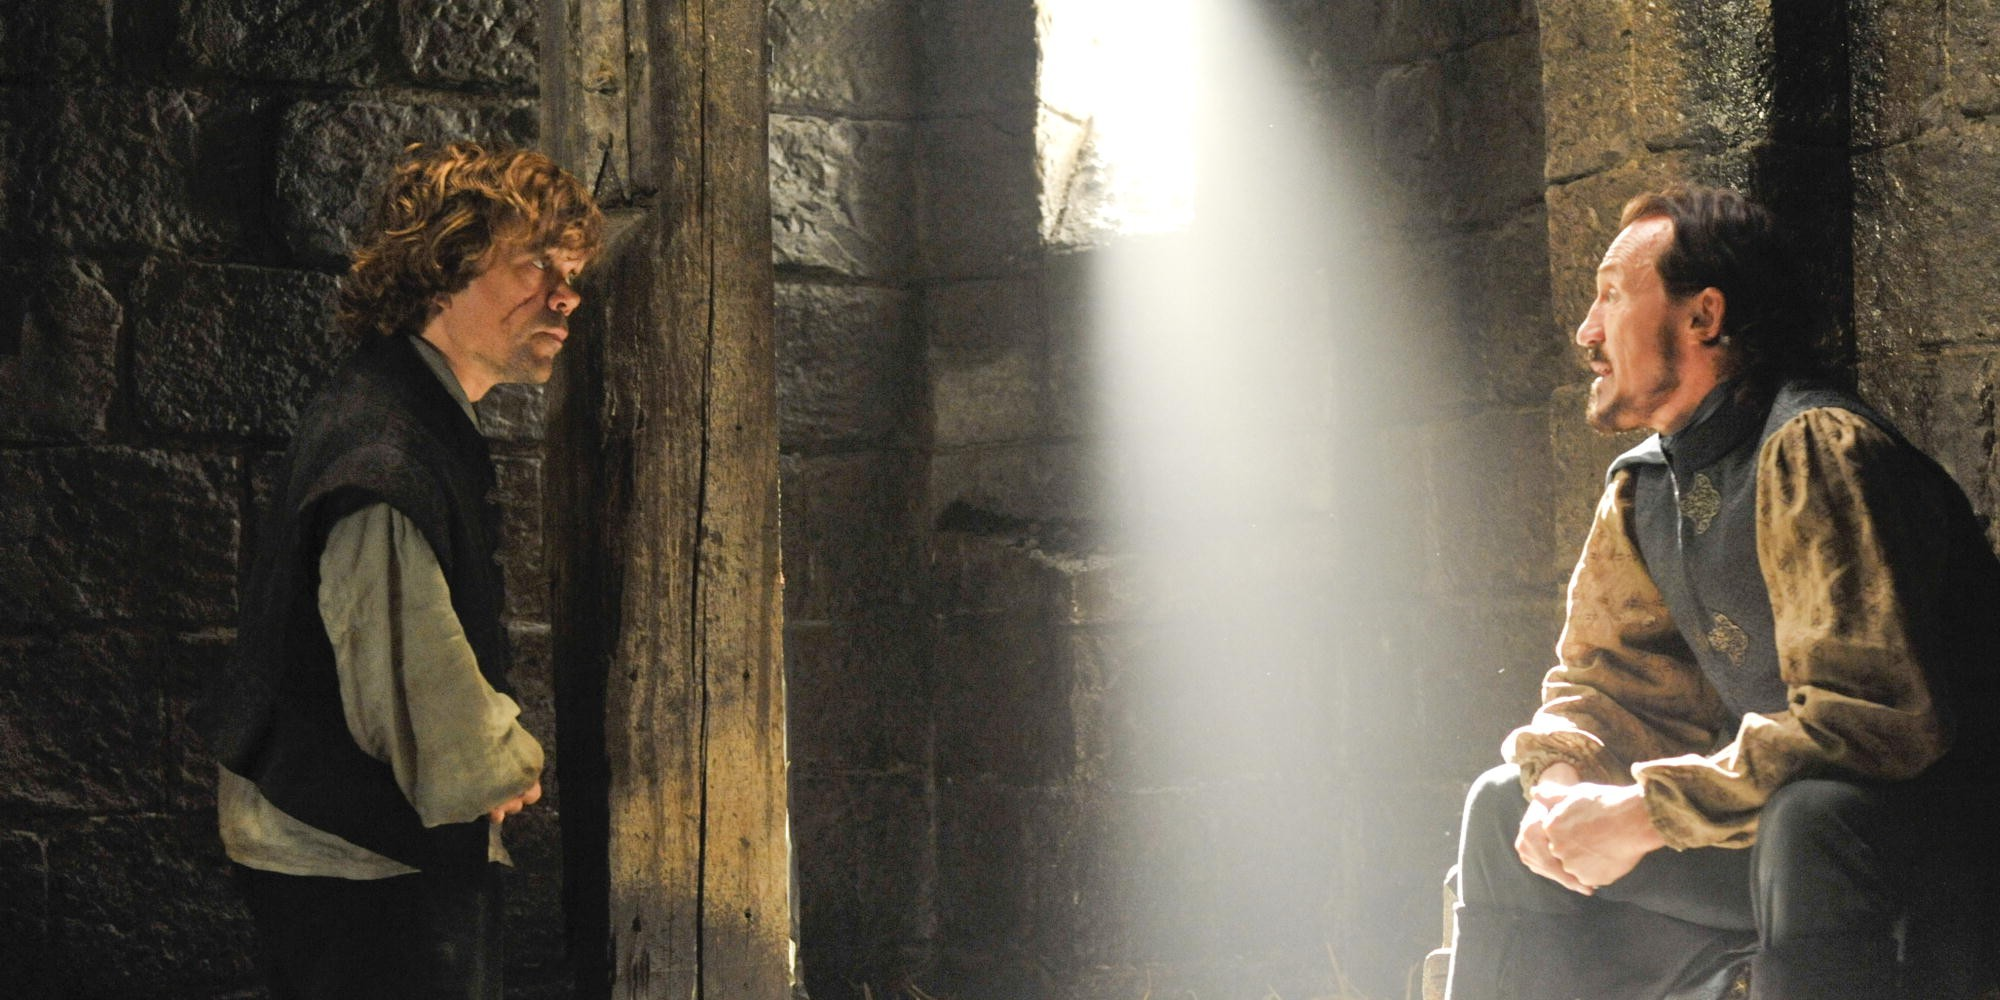 Peter Dinklage as Tyrion Lannister and Jerome Flynn as Bronn in Game of Thrones